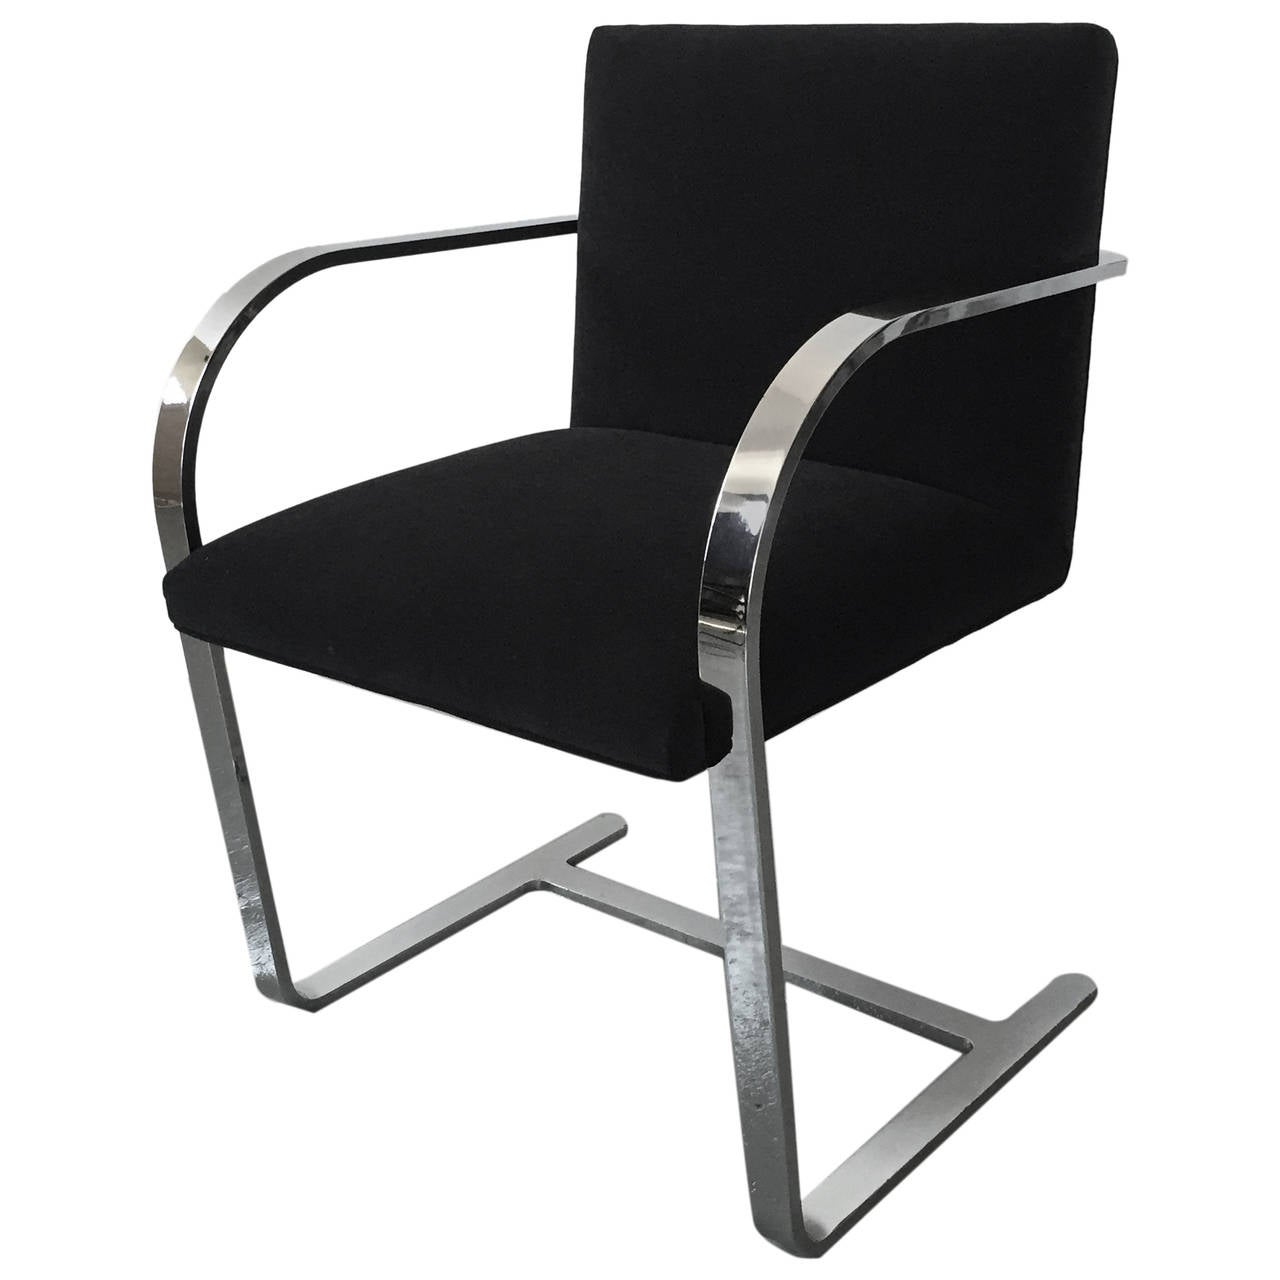 Black Chairs For Sale Brno Chair In Black For Sale At 1stdibs